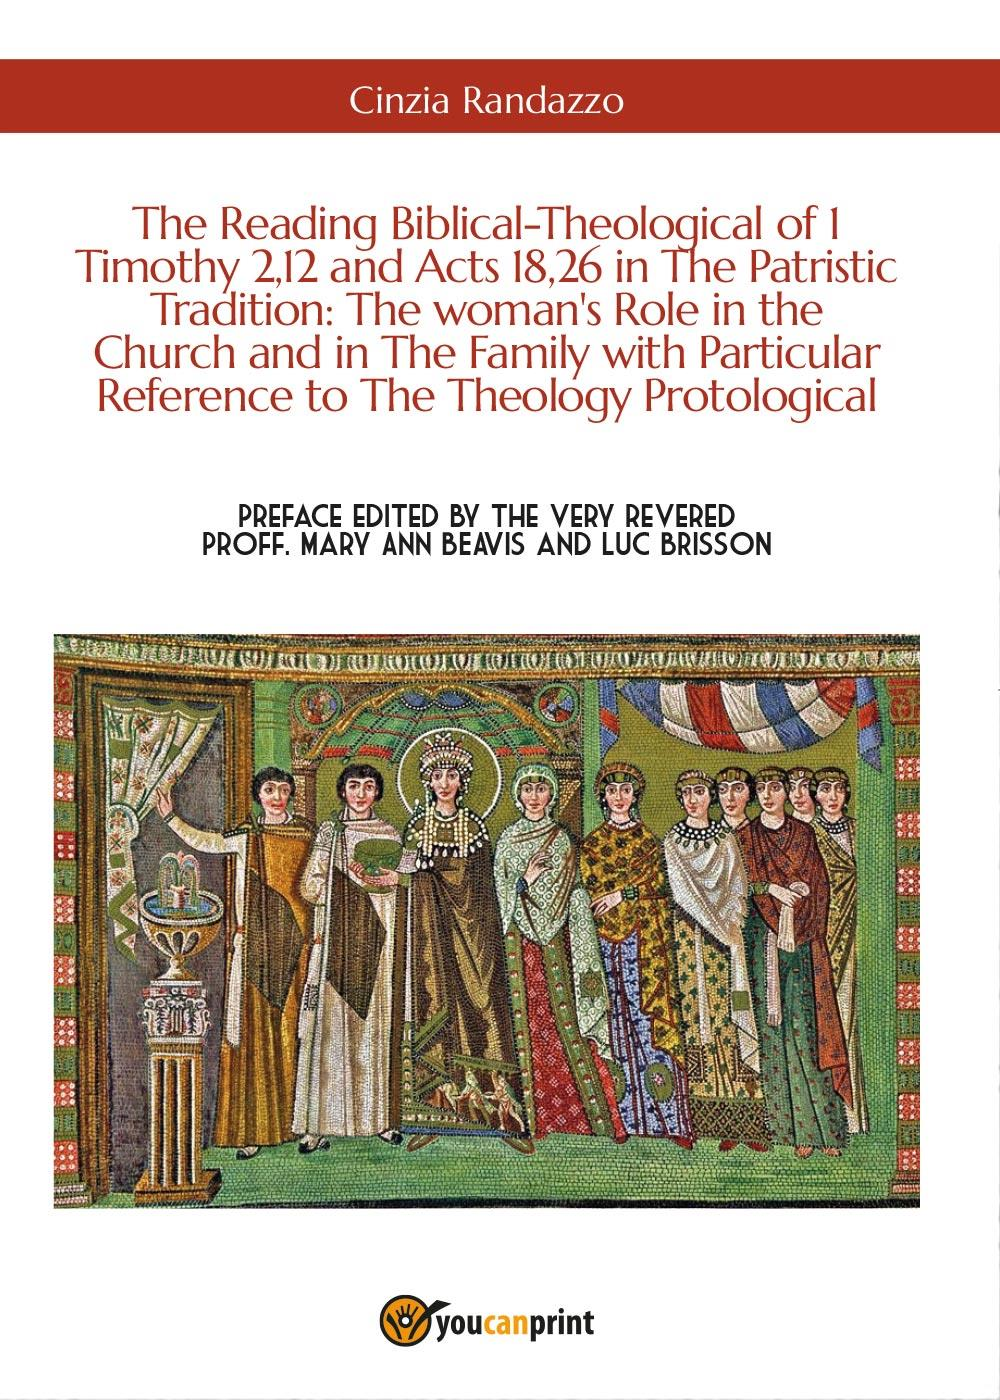 The Reading Biblical-Theological of 1 Timothy 2,12 and Acts 18,26 in The Patristic Tradition: The woman's Role in the Church and in The Family with Particular Reference to The Theology Protological